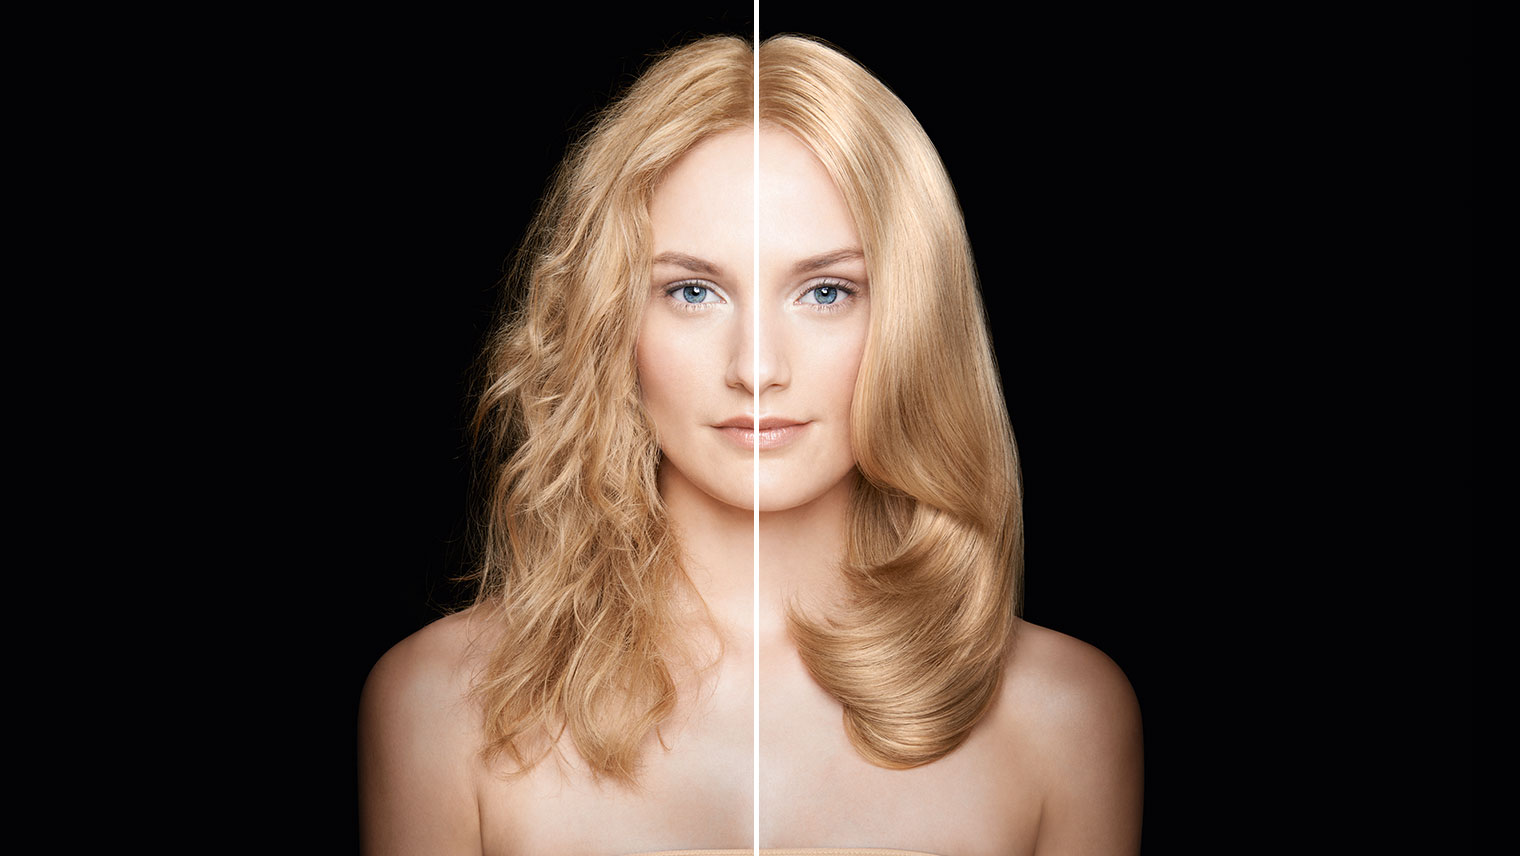 Image of female with blonde hair from frizzy to smooth